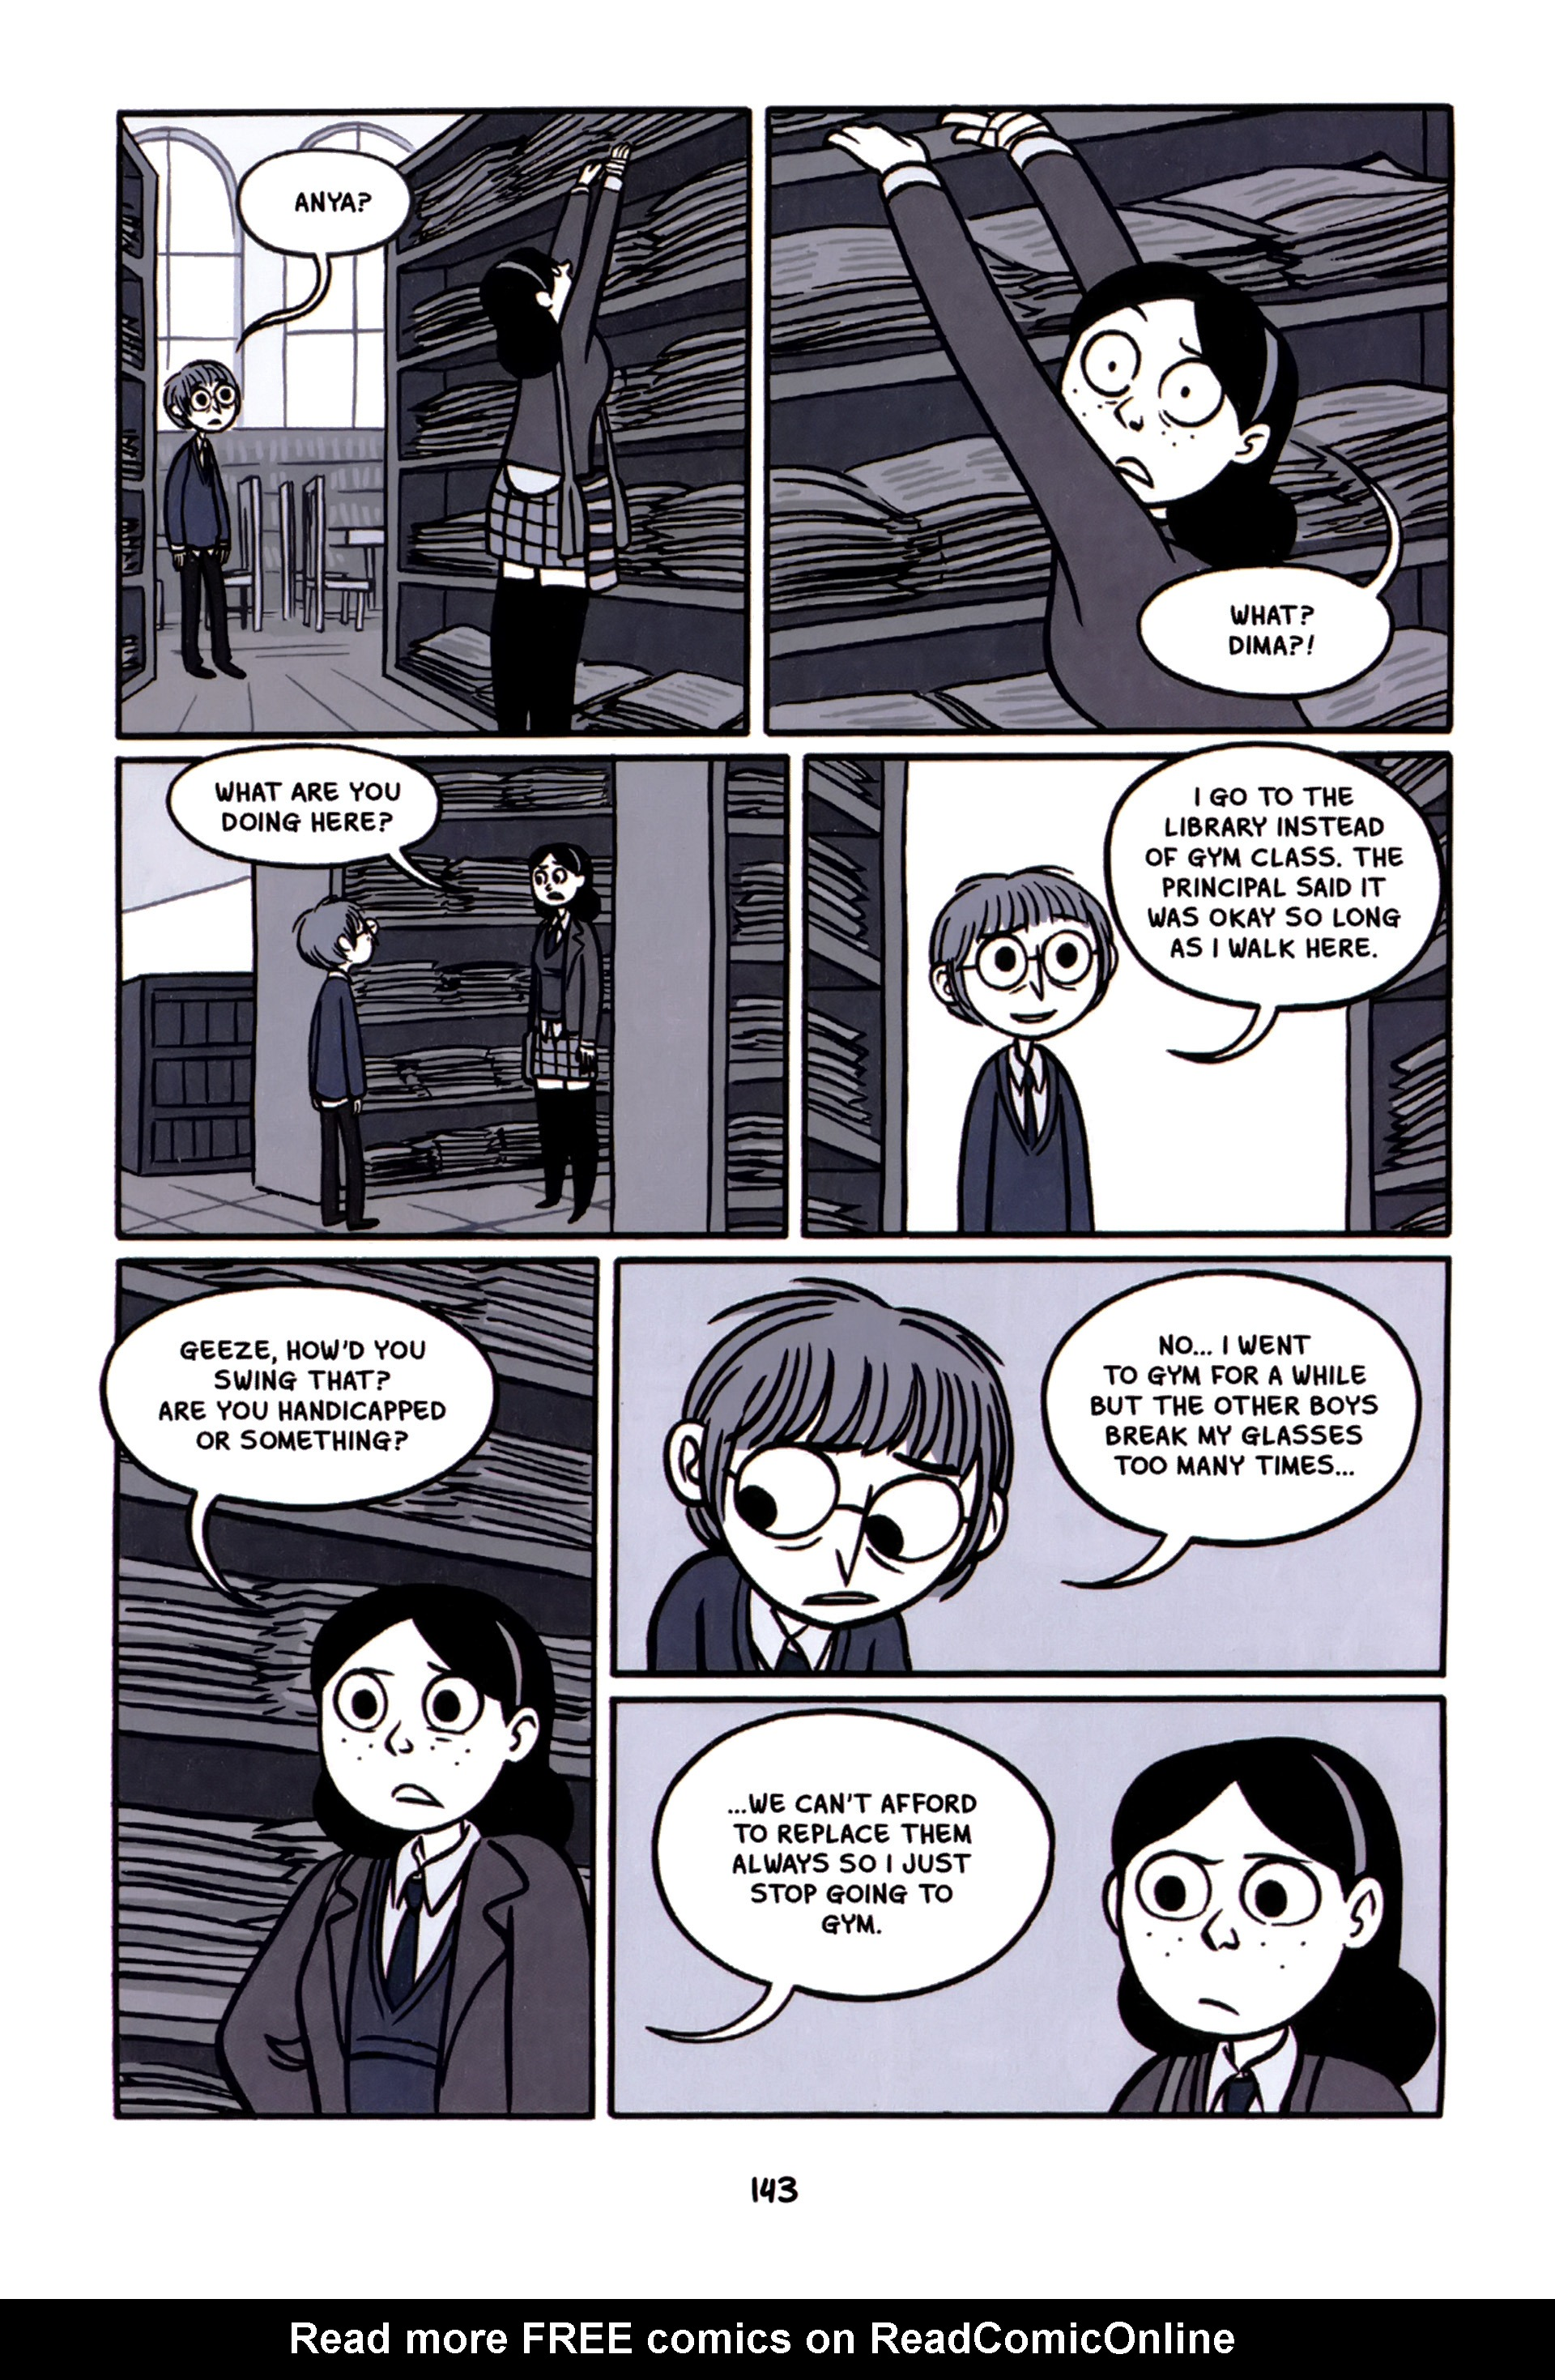 Read online Anya's Ghost comic -  Issue #1 - 144